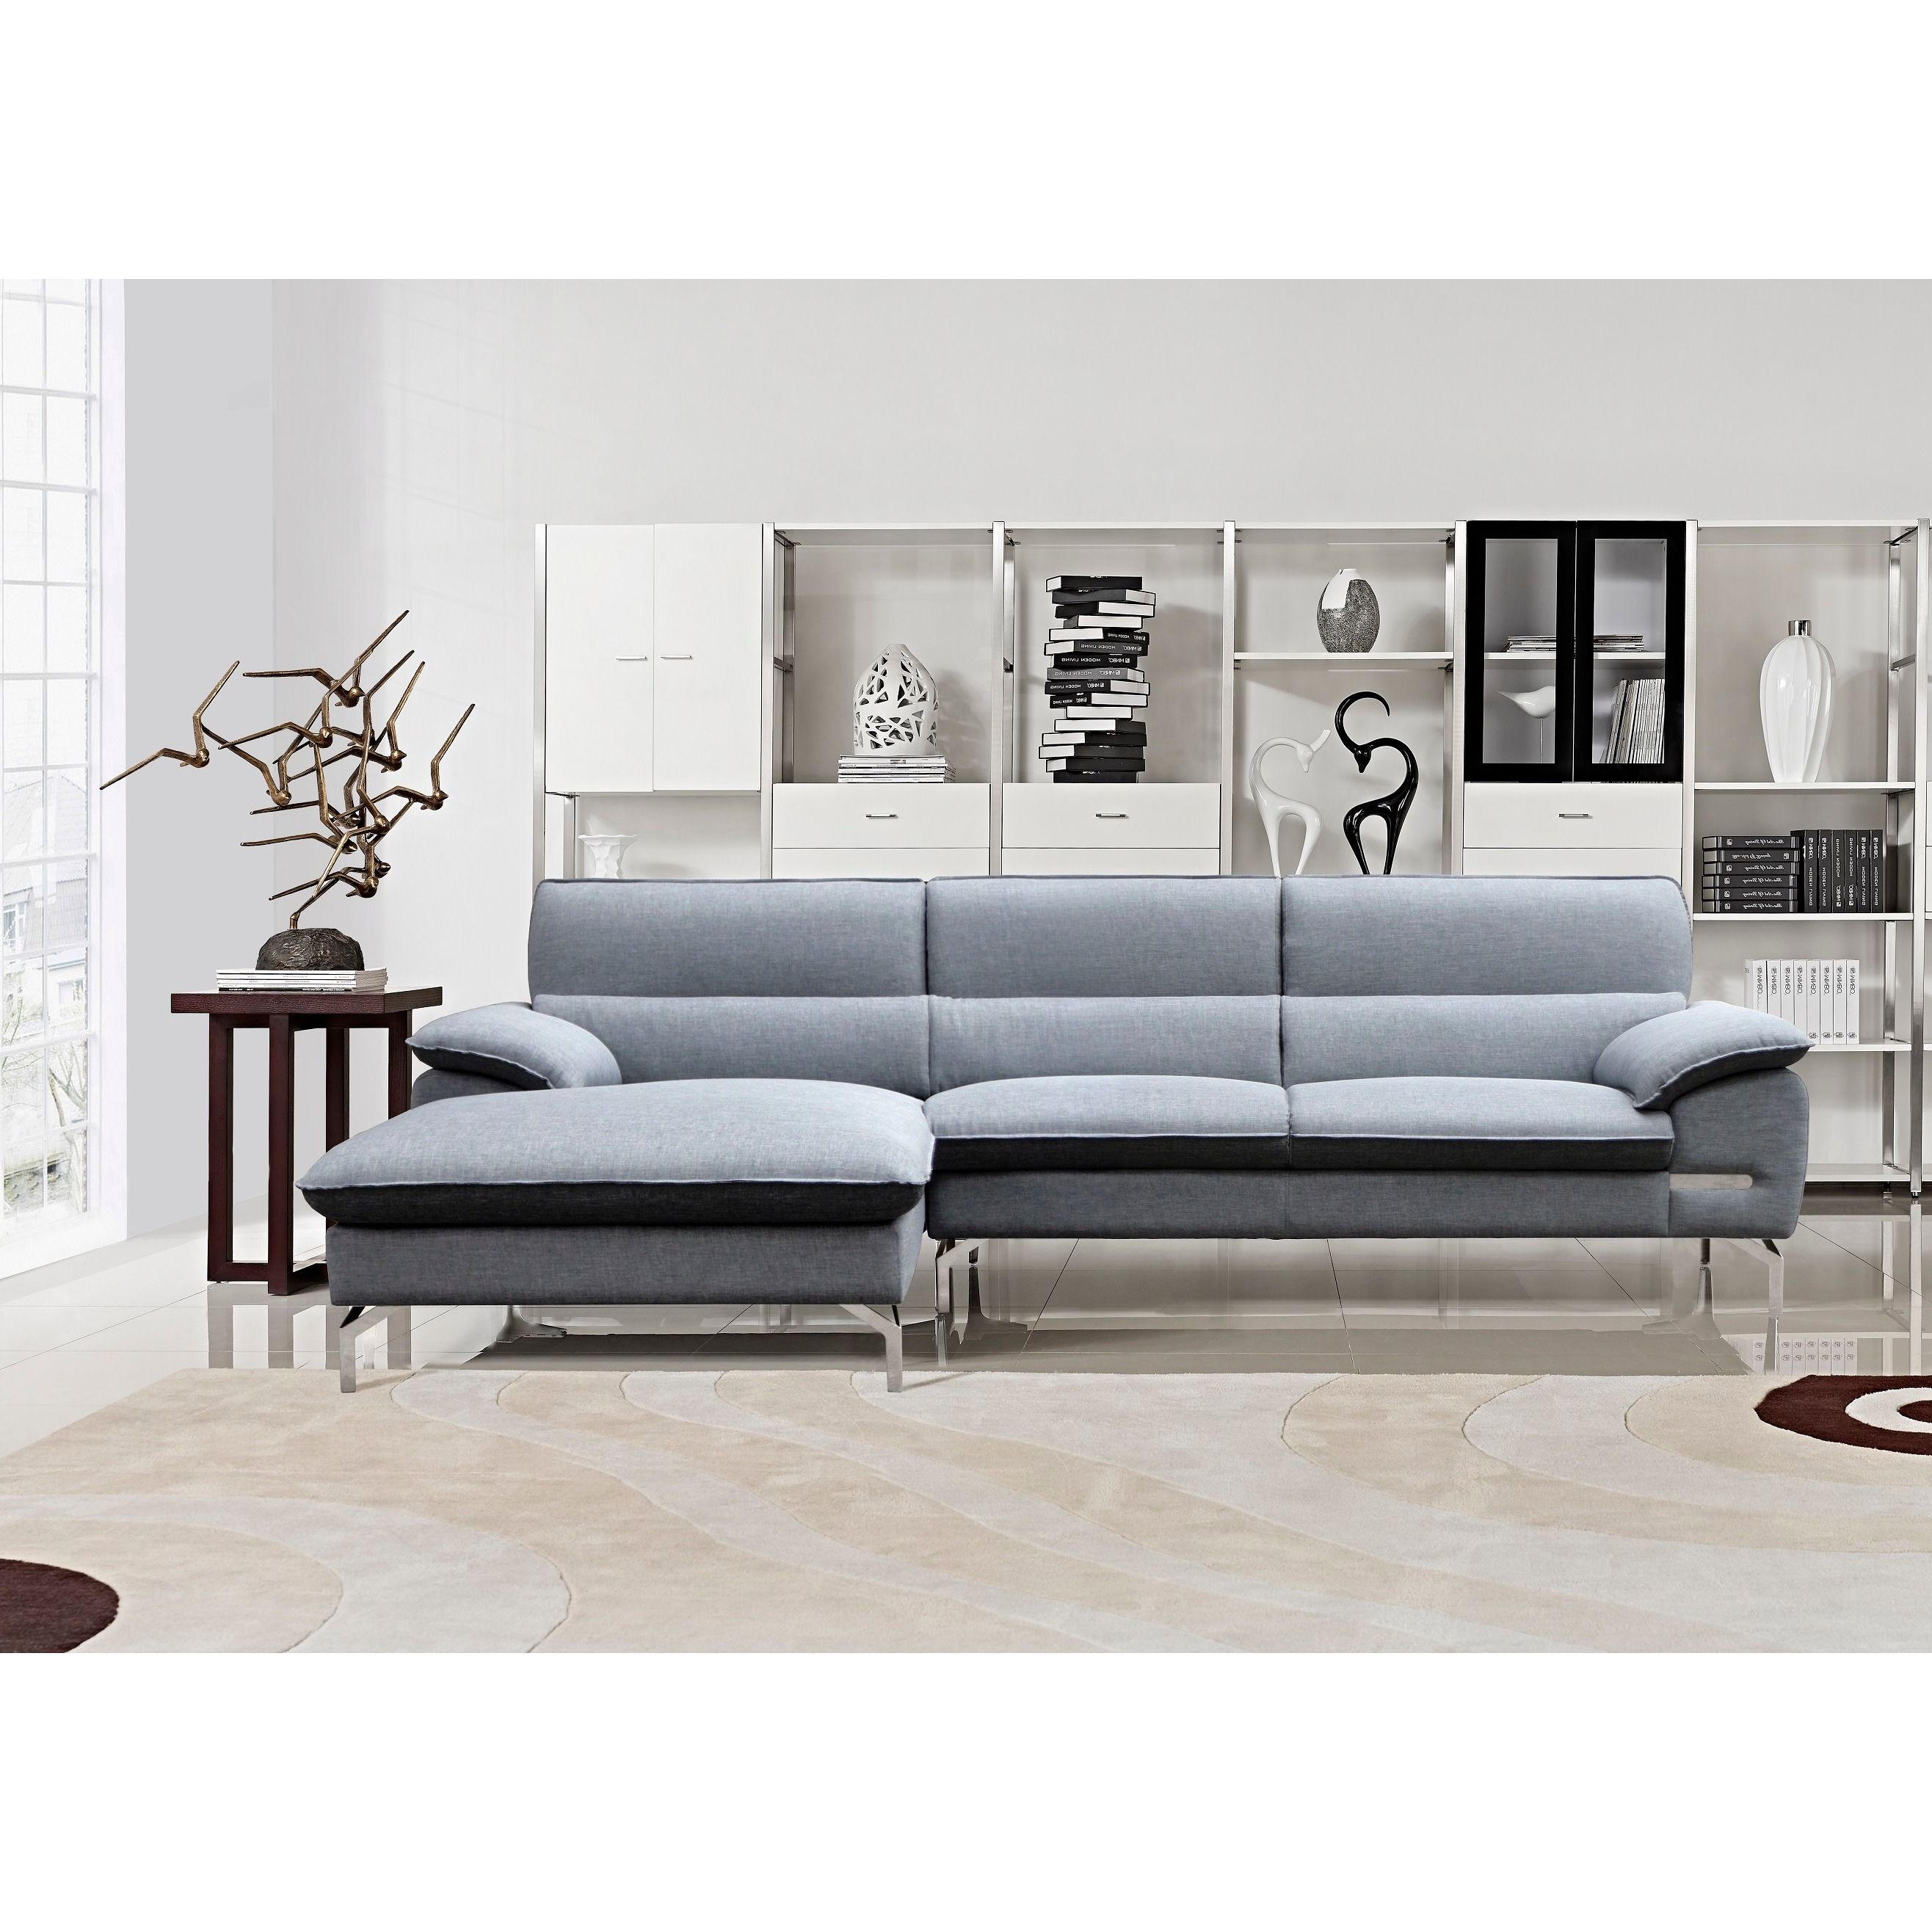 Cynthia Grey Fabric Contemporary Sectional Sofa Set by US Pride